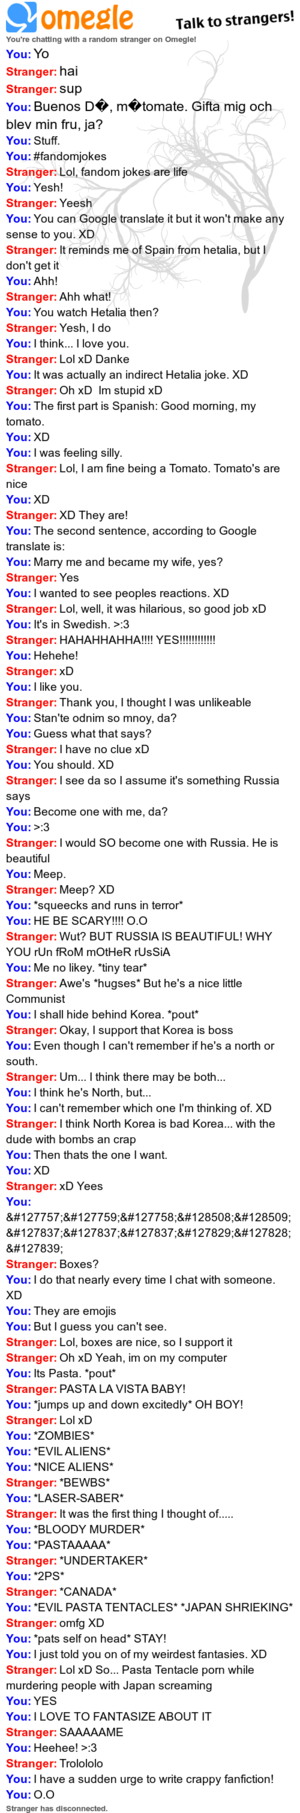 One of my paborito Omegle chats